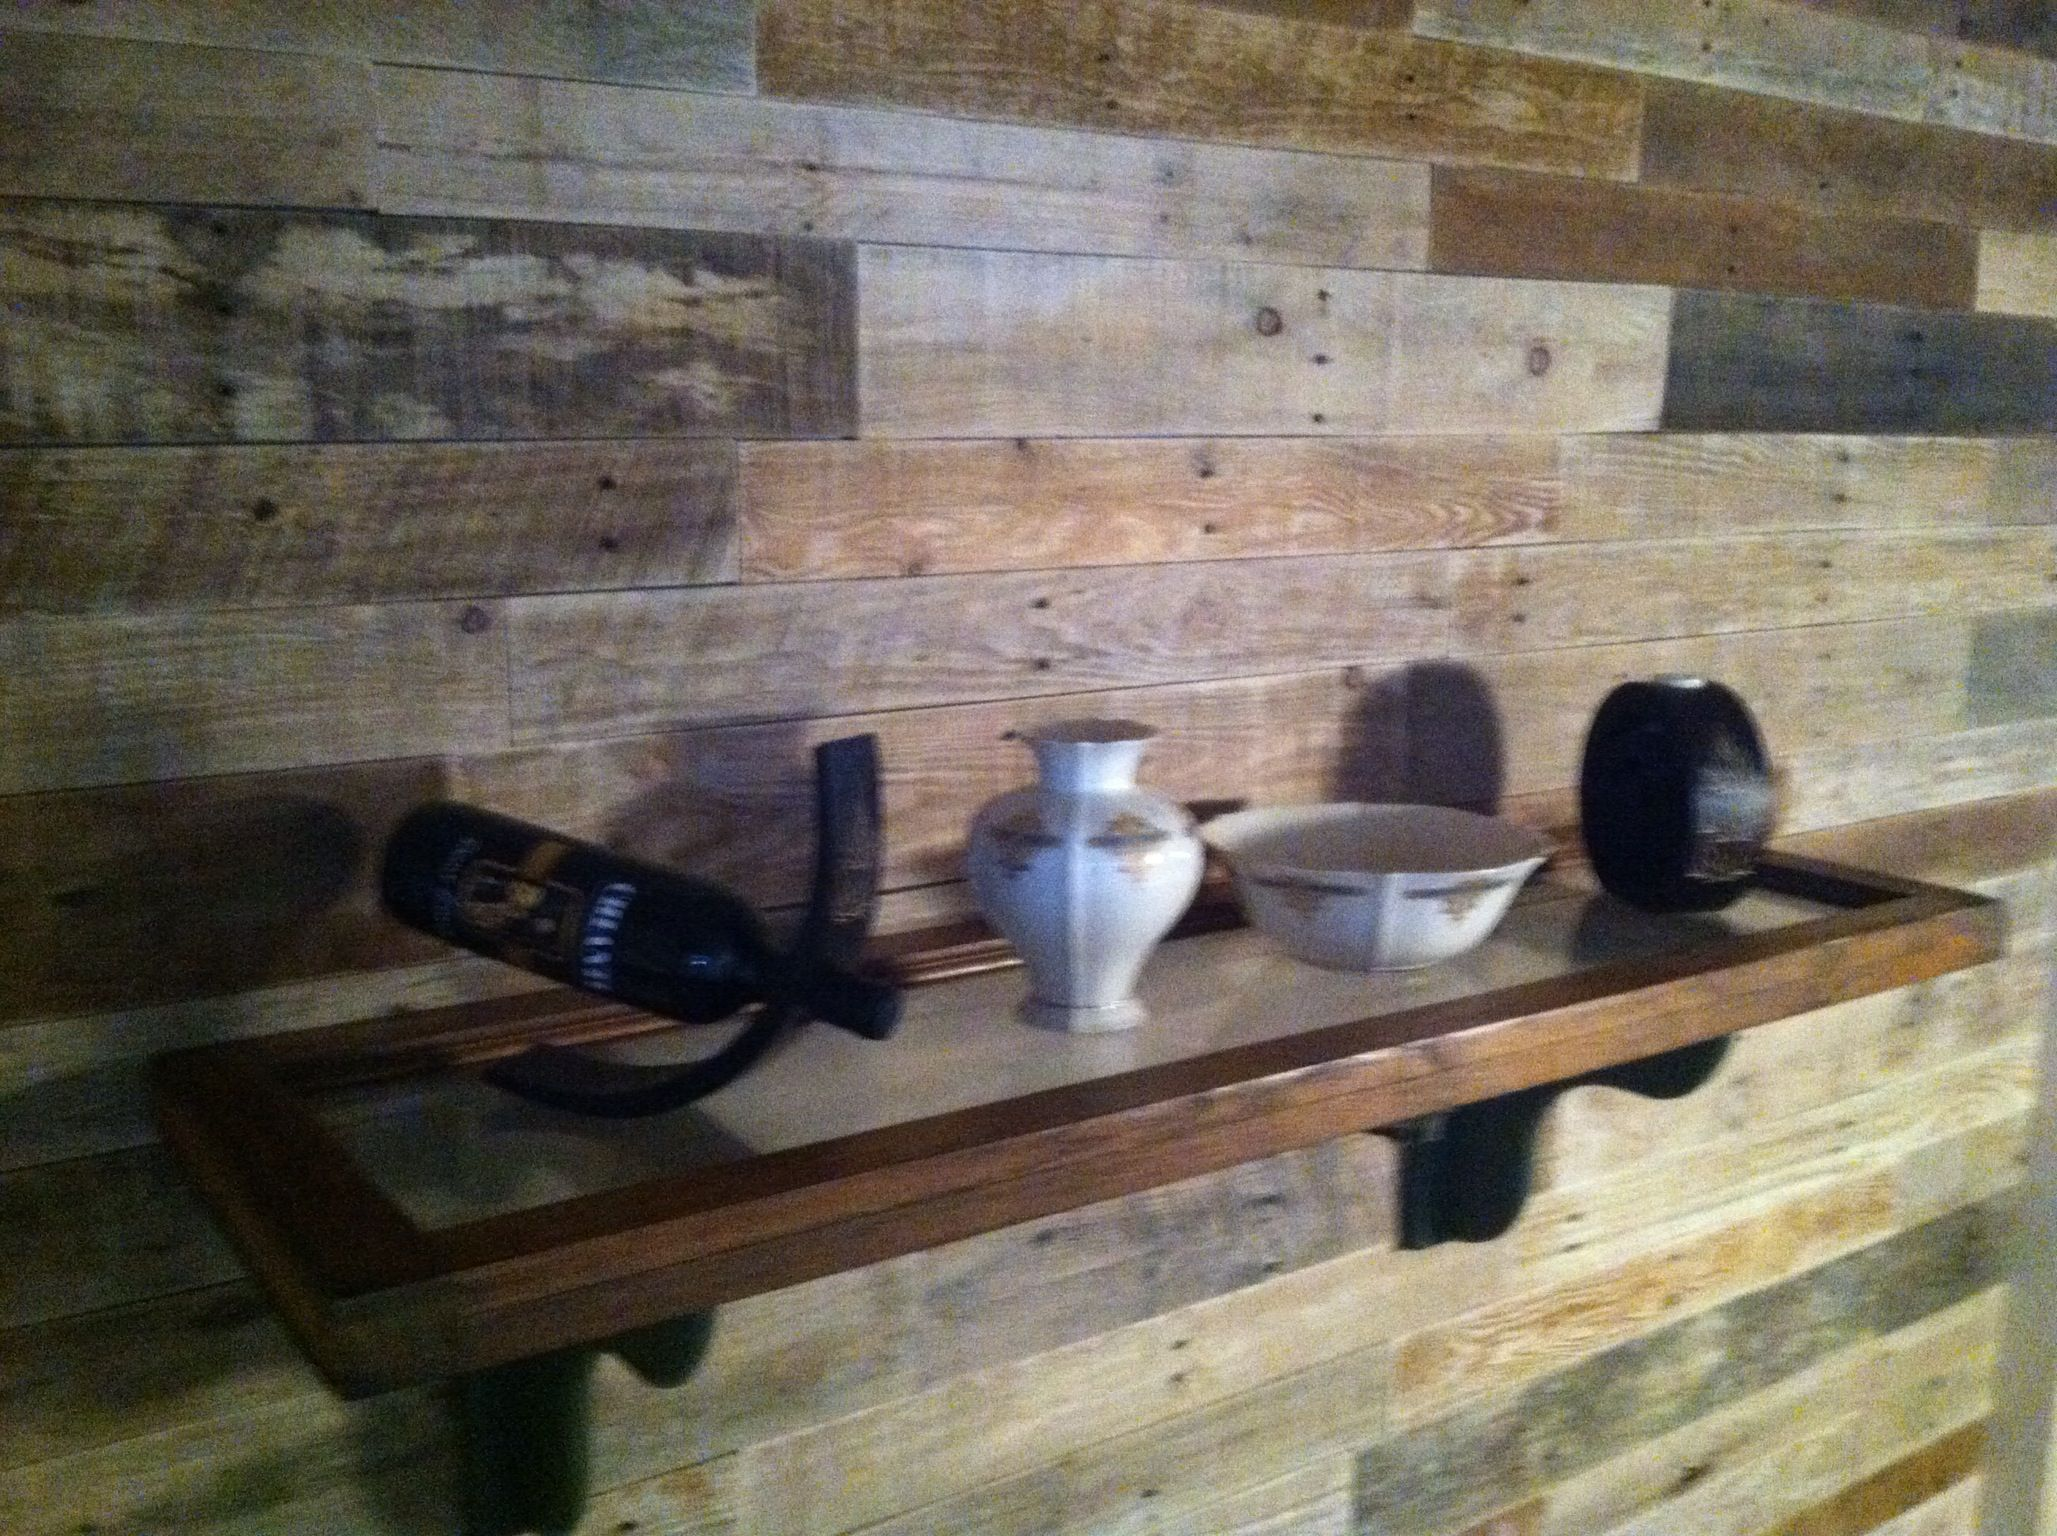 Wood Covered Walls mantle height shelf made from old transom window mounted on a wall